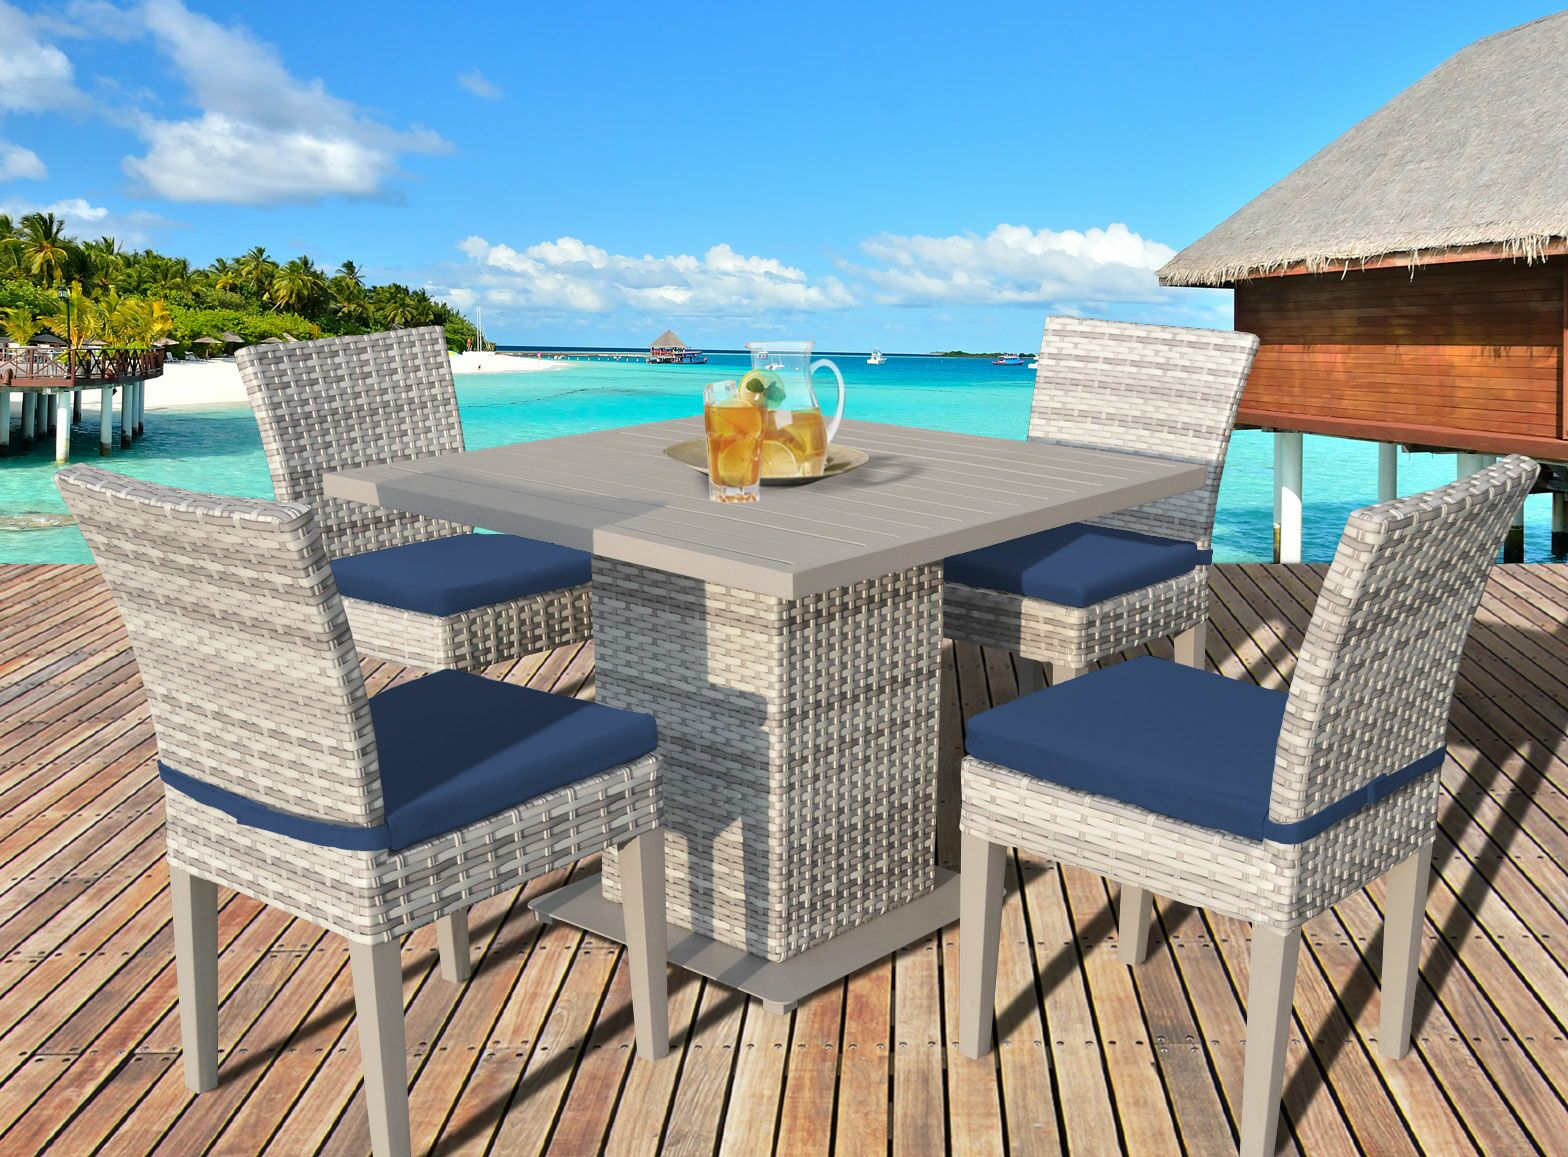 Ansonia 5 Piece Dining Set with Cushions Color: Navy